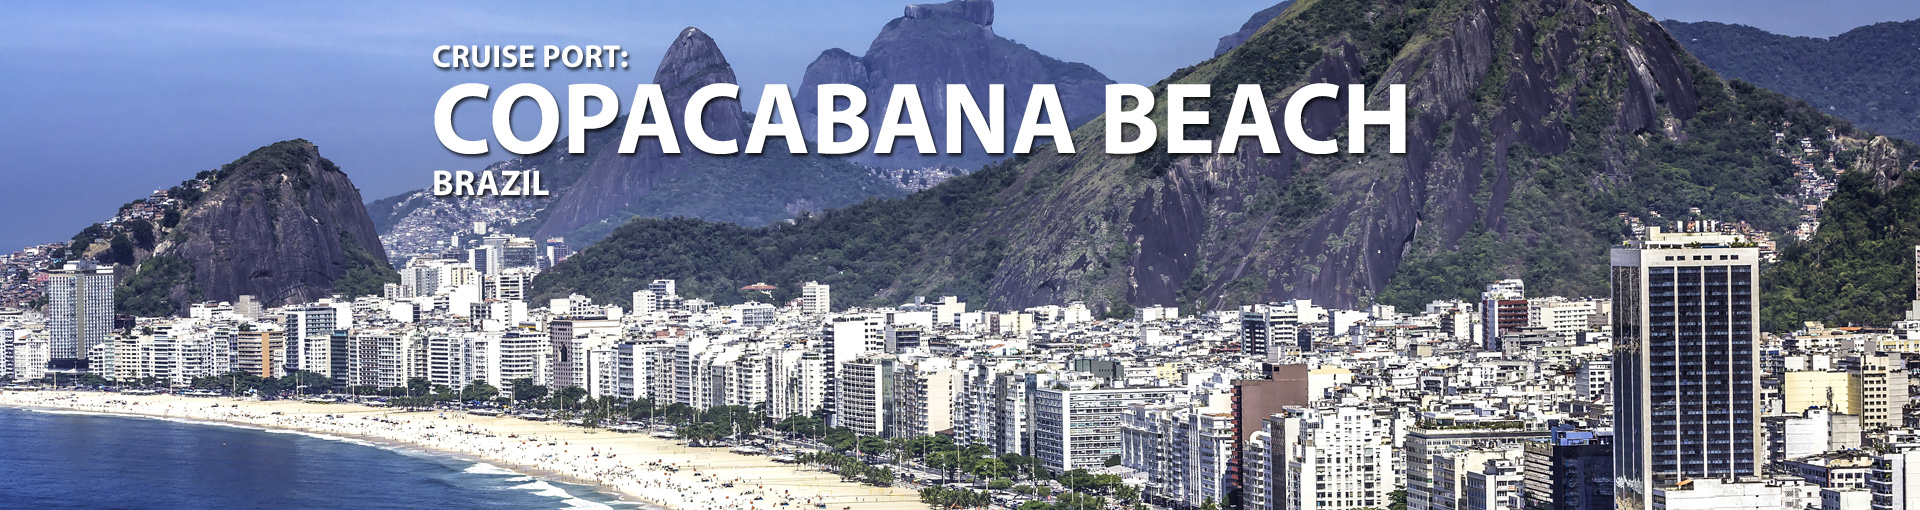 Cruises to Copacabana Beach, Brazil